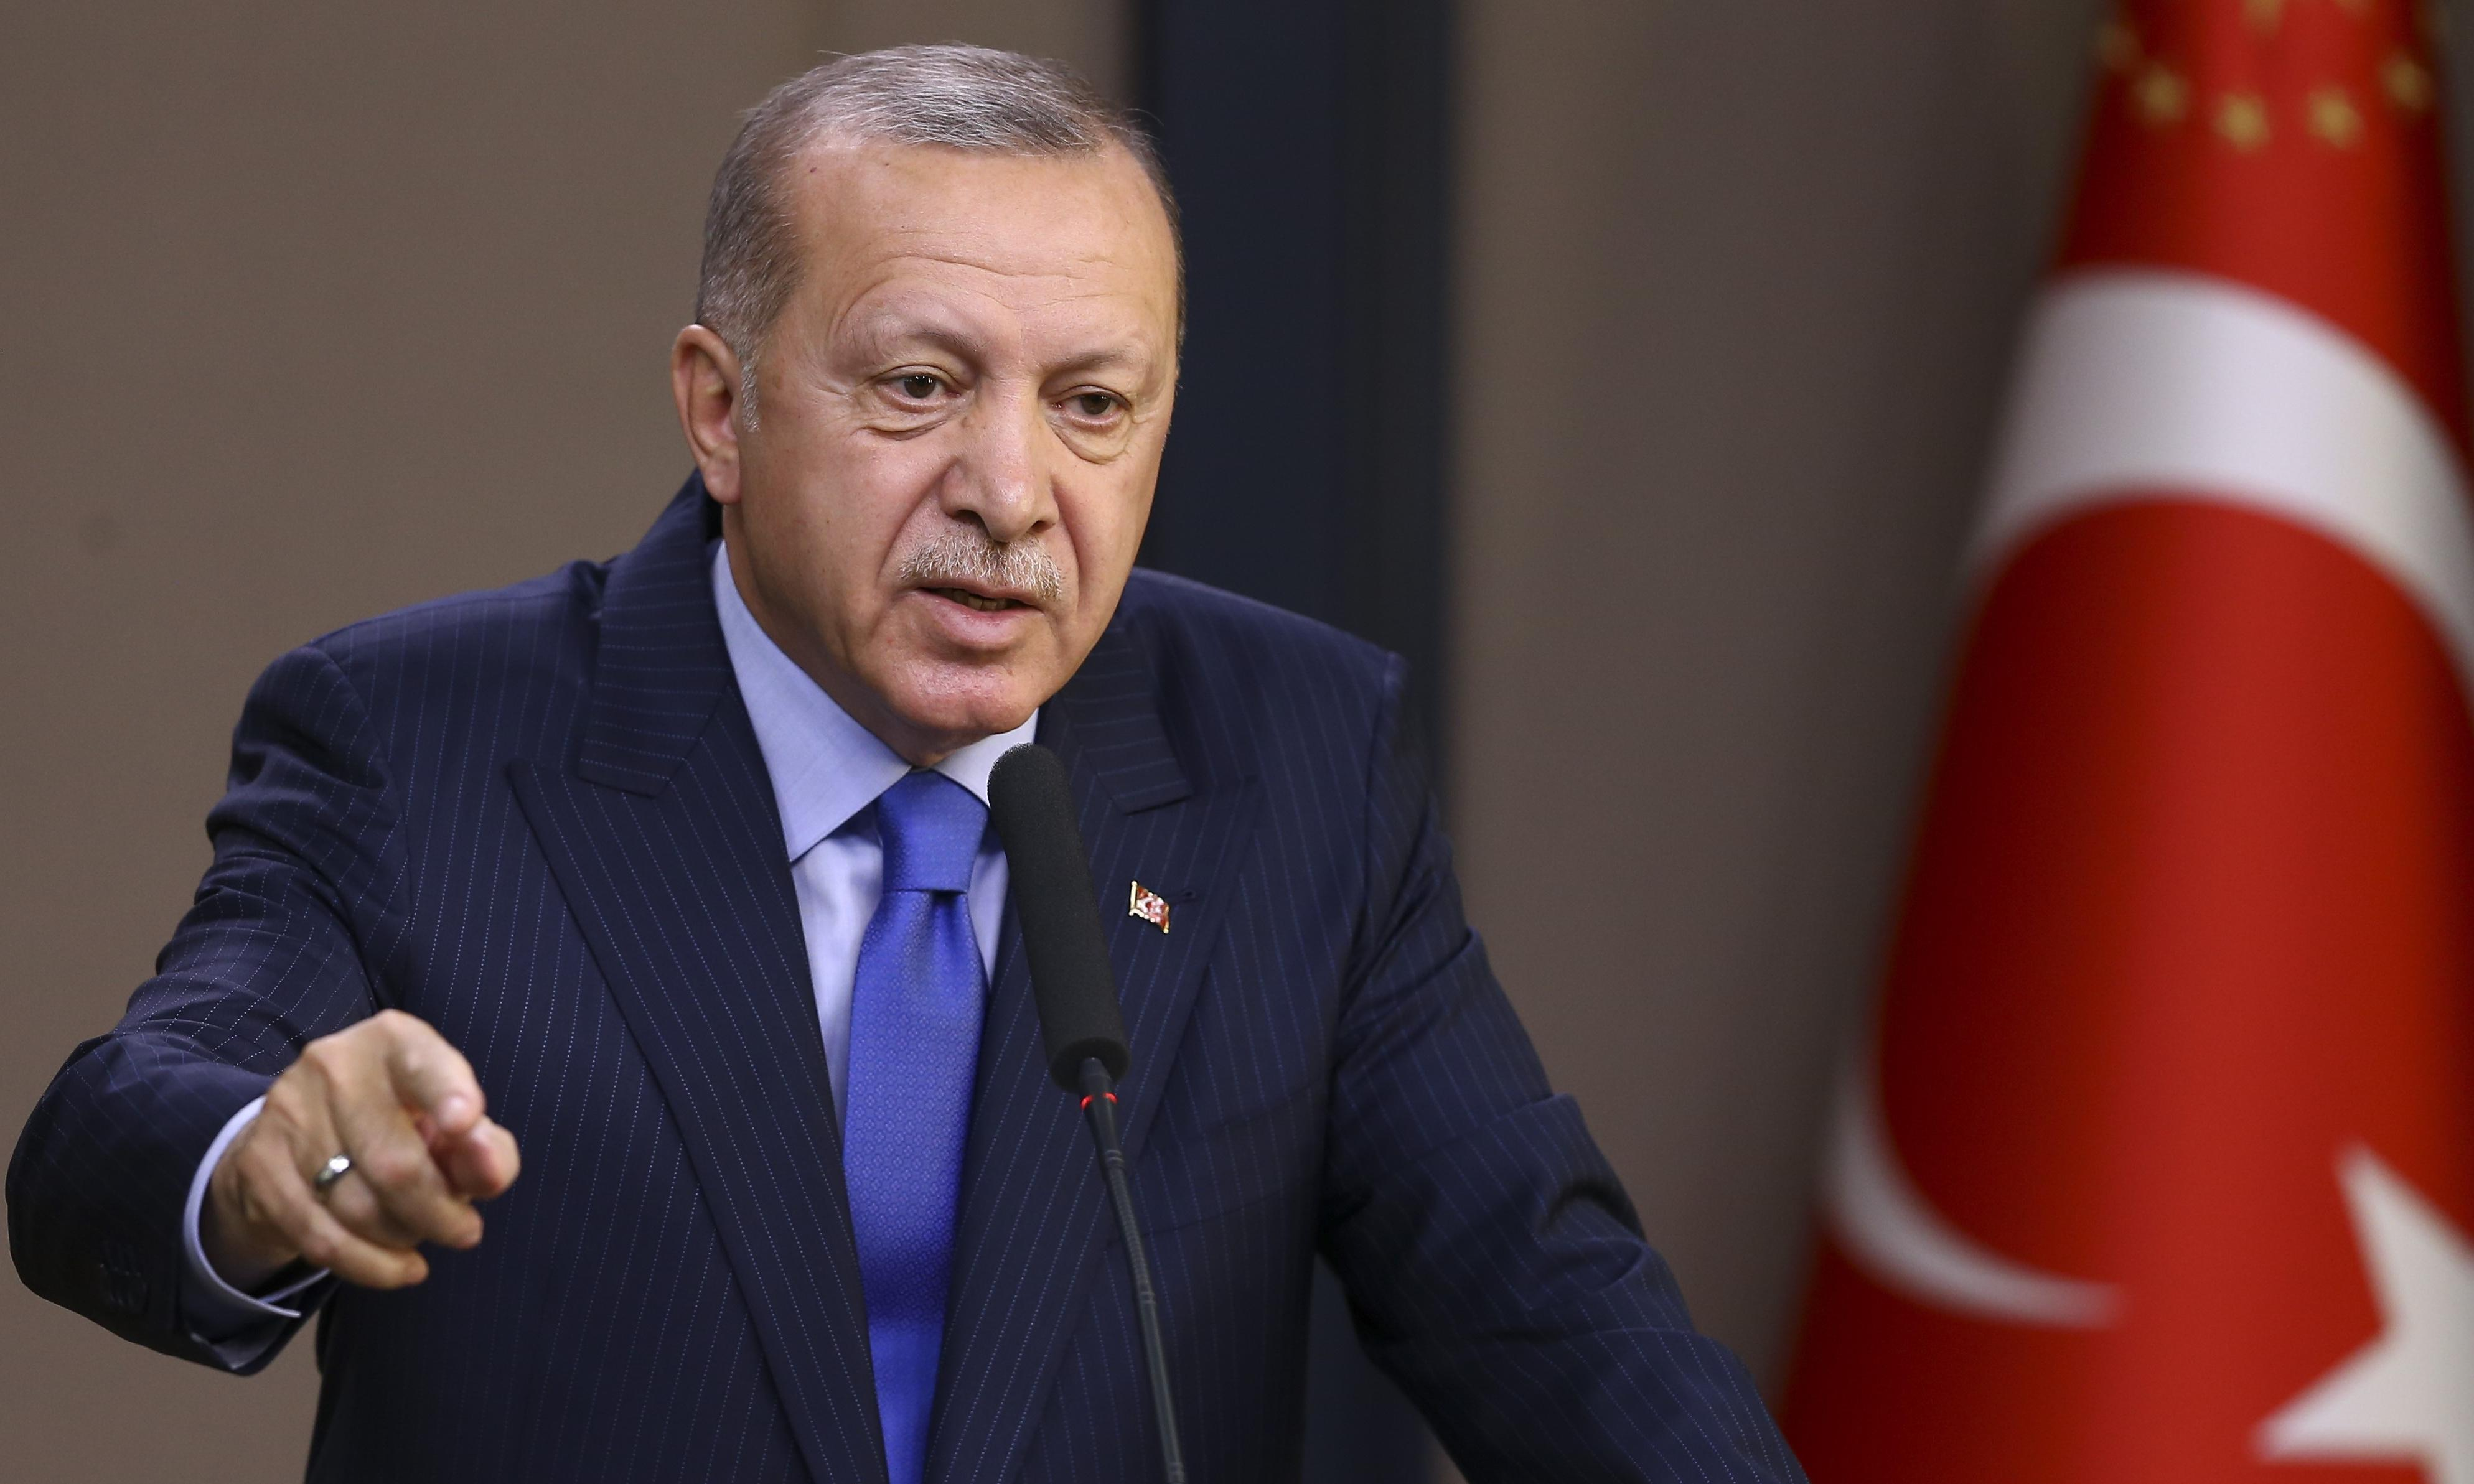 American Isis suspect stuck on border 'not our problem', says Erdoğan